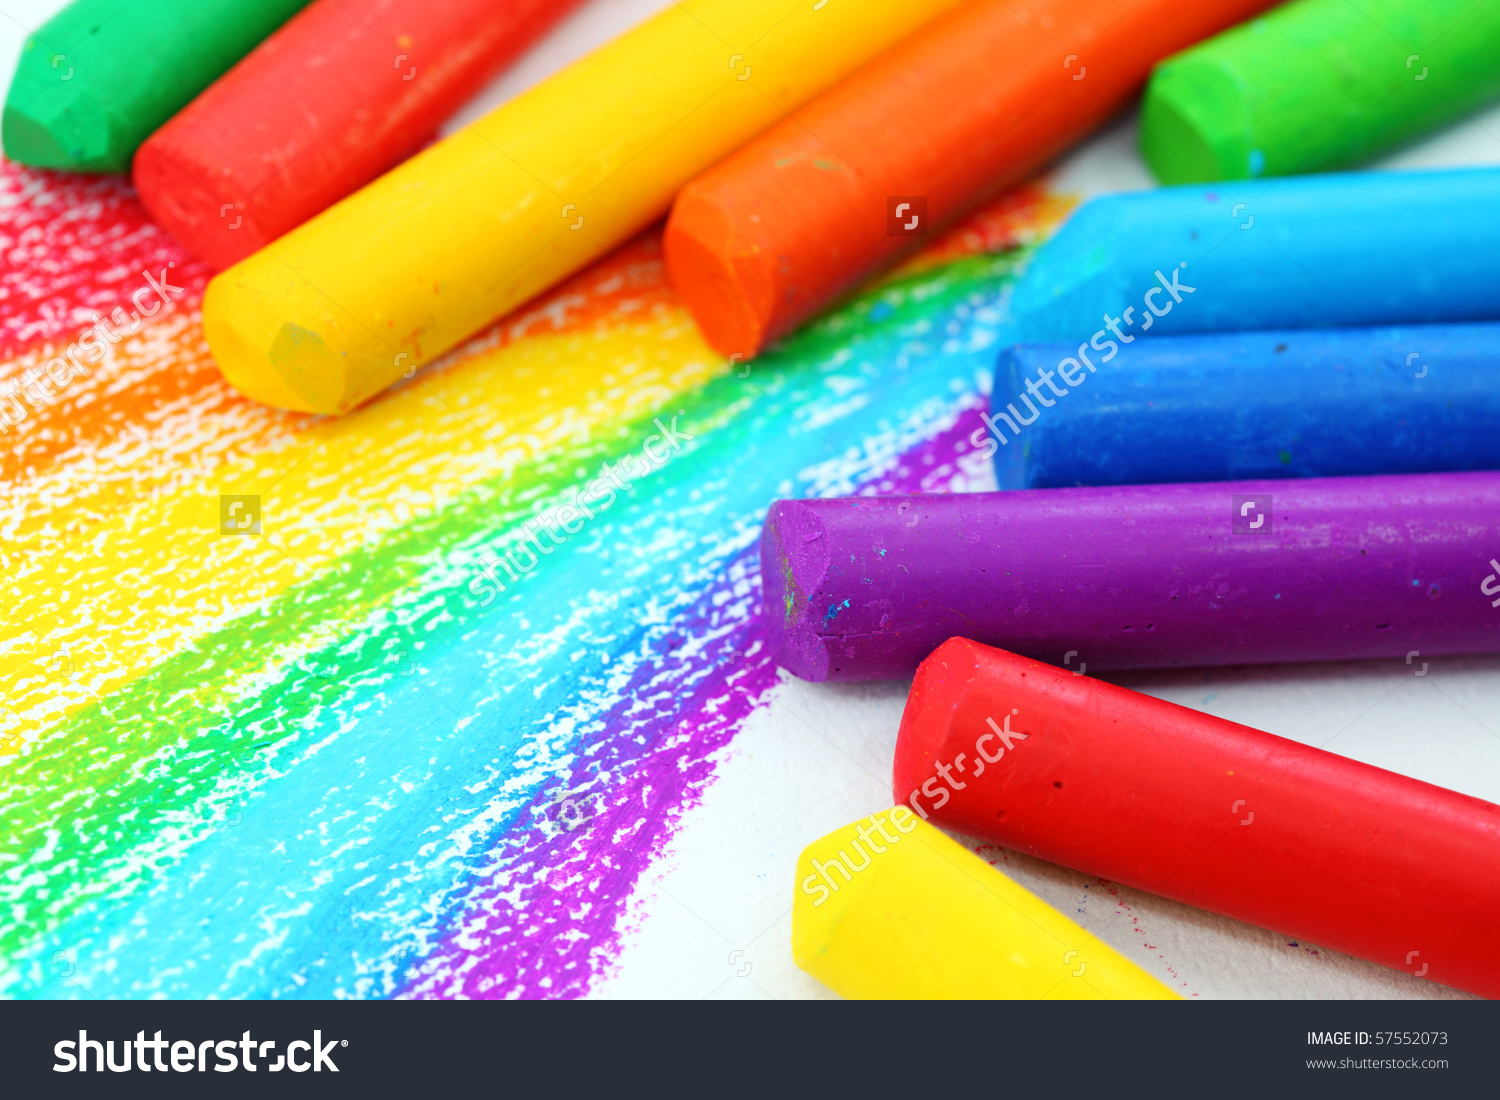 Oil pastel clipart graphic freeuse Oil Pastel Crayons On White Paper Stock Photo 57552073 - Shutterstock graphic freeuse